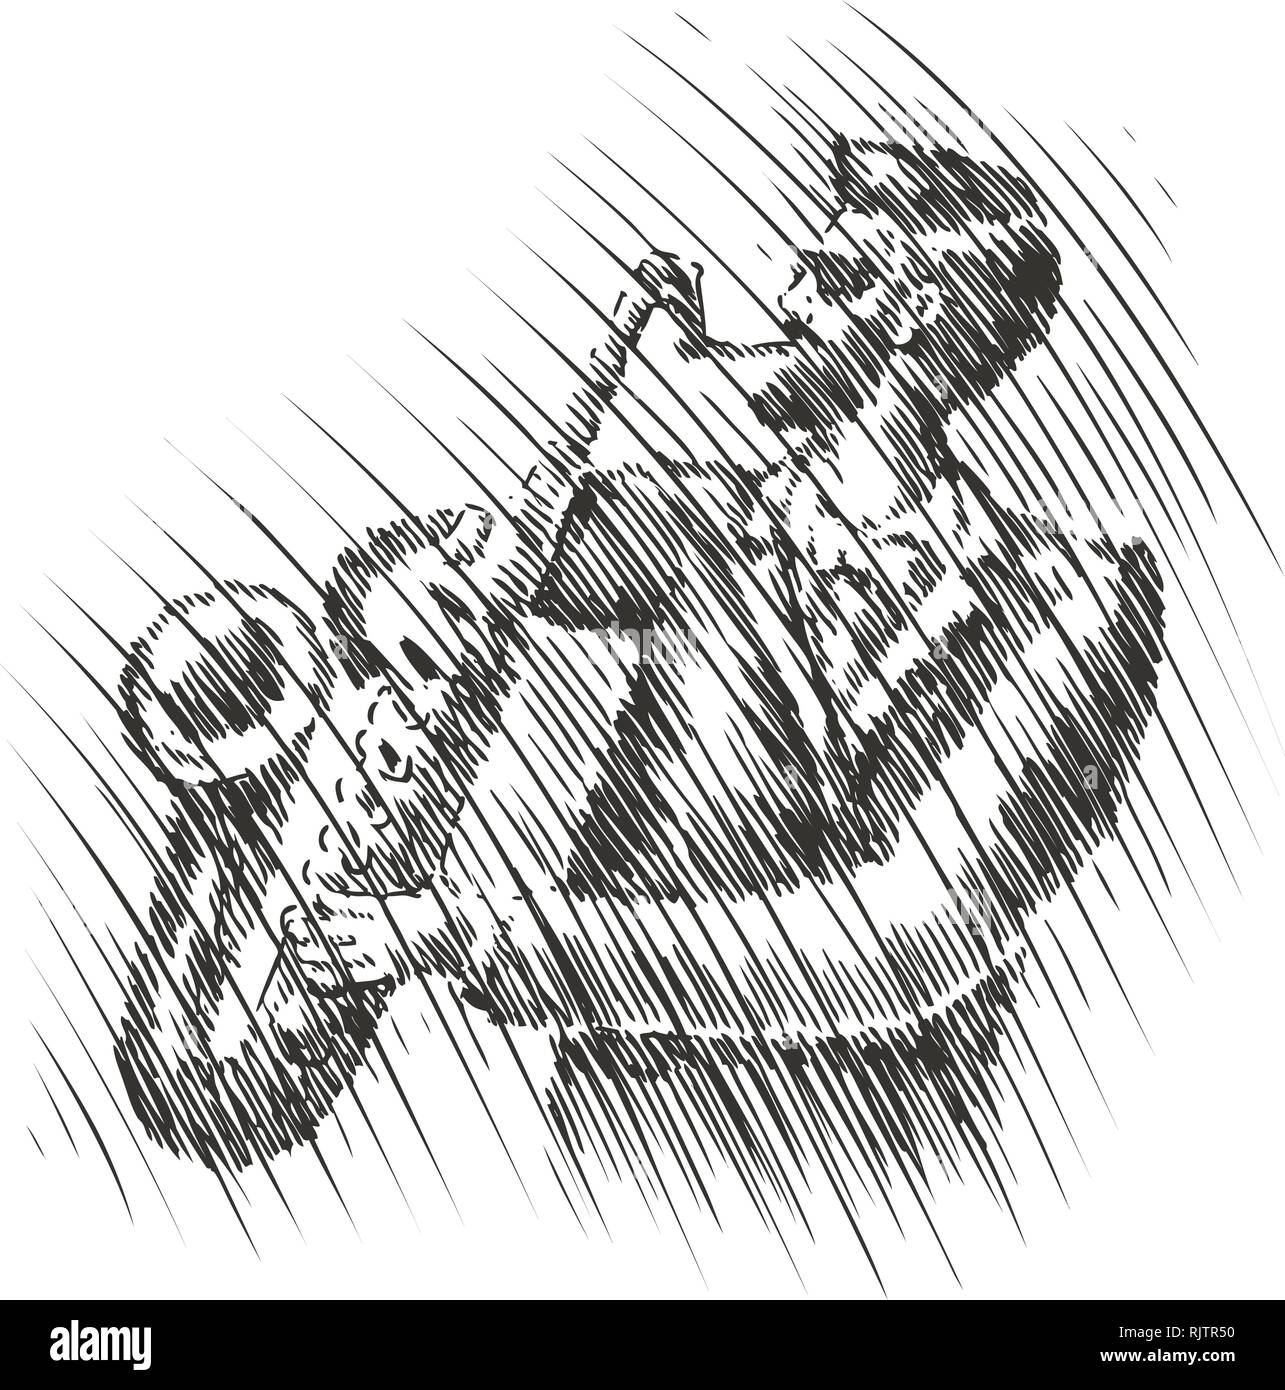 Musician plays the saxophone. Live music, musical festival sketch. Jazz, blues vector illustration - Stock Image